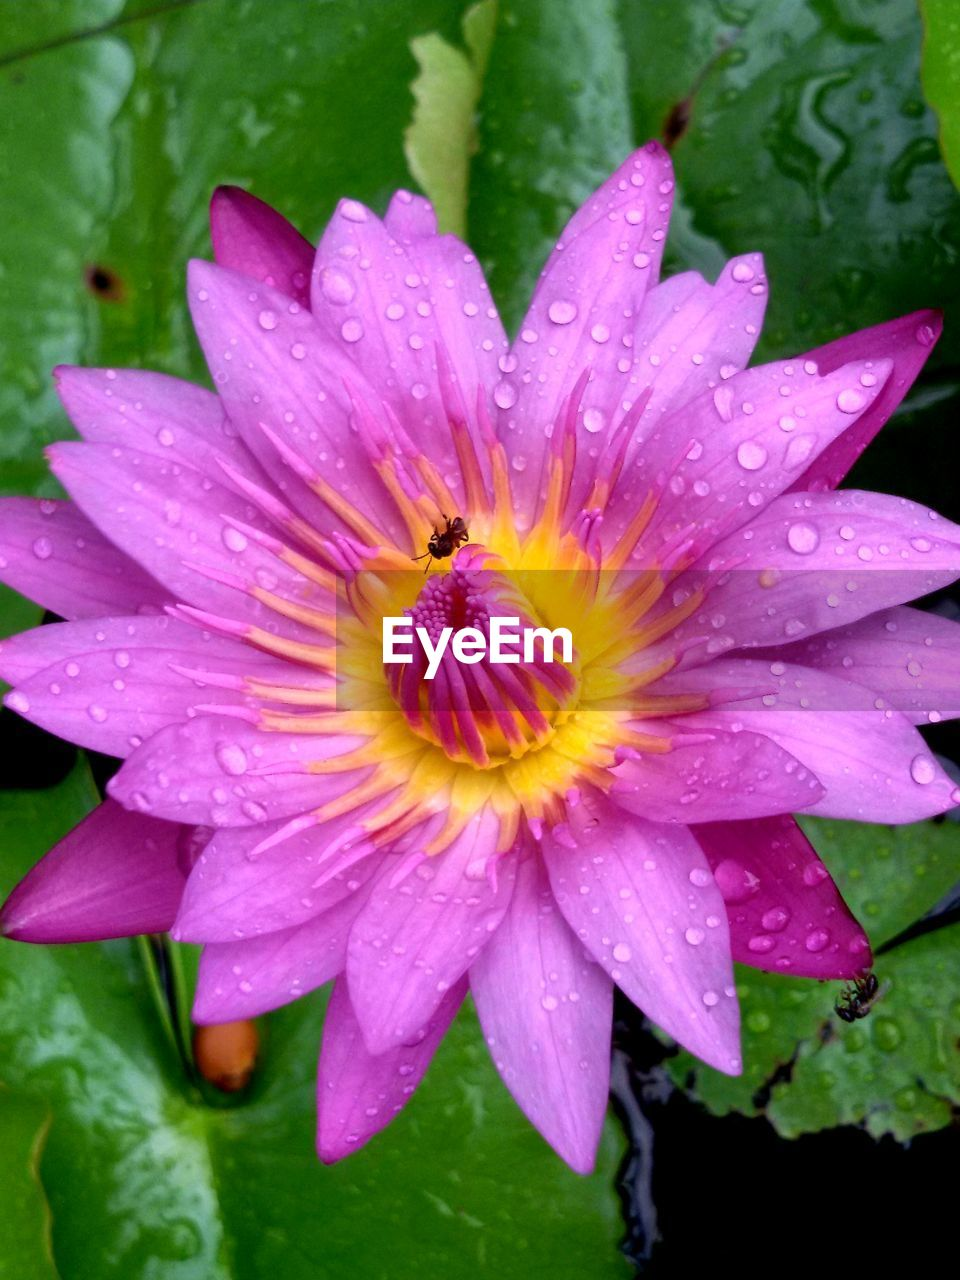 flowering plant, flower, fragility, beauty in nature, petal, vulnerability, plant, water, growth, drop, flower head, freshness, inflorescence, wet, close-up, nature, rain, no people, pink color, raindrop, pollen, dew, outdoors, purple, rainy season, purity